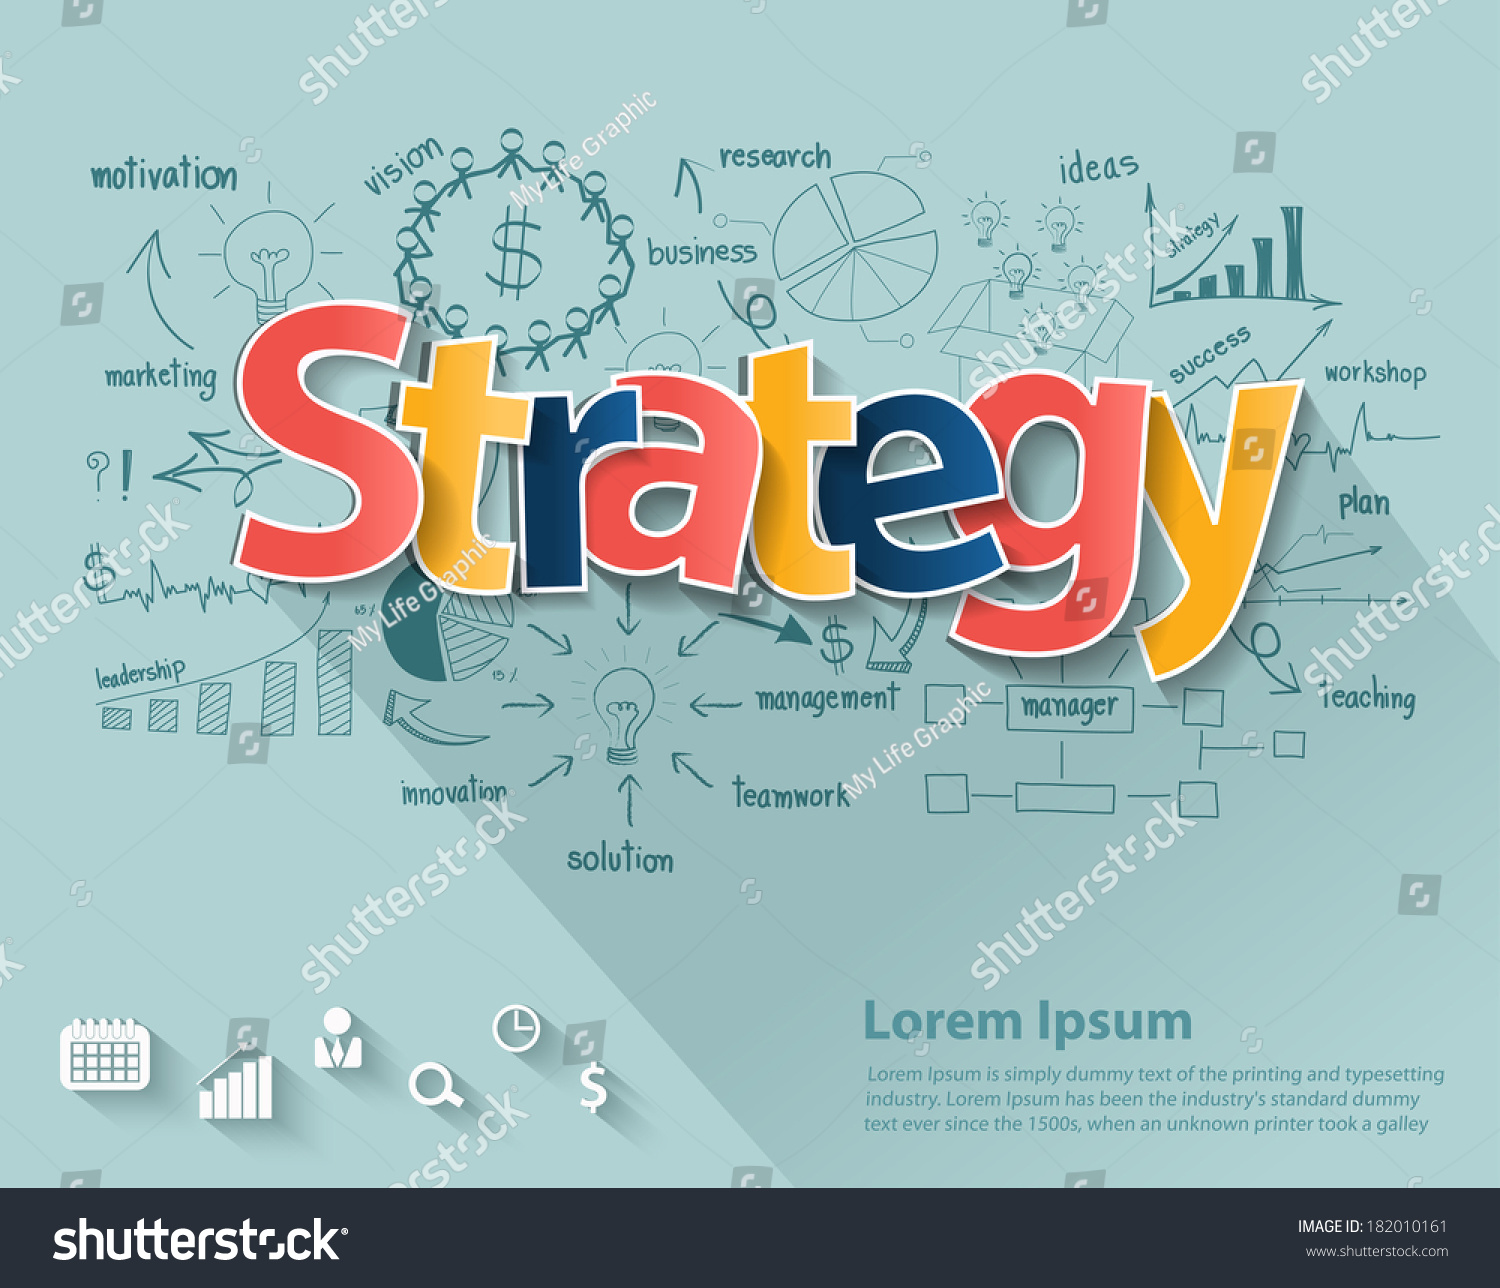 Business Strategy Concept Creative Drawing Charts Stock Vector ...